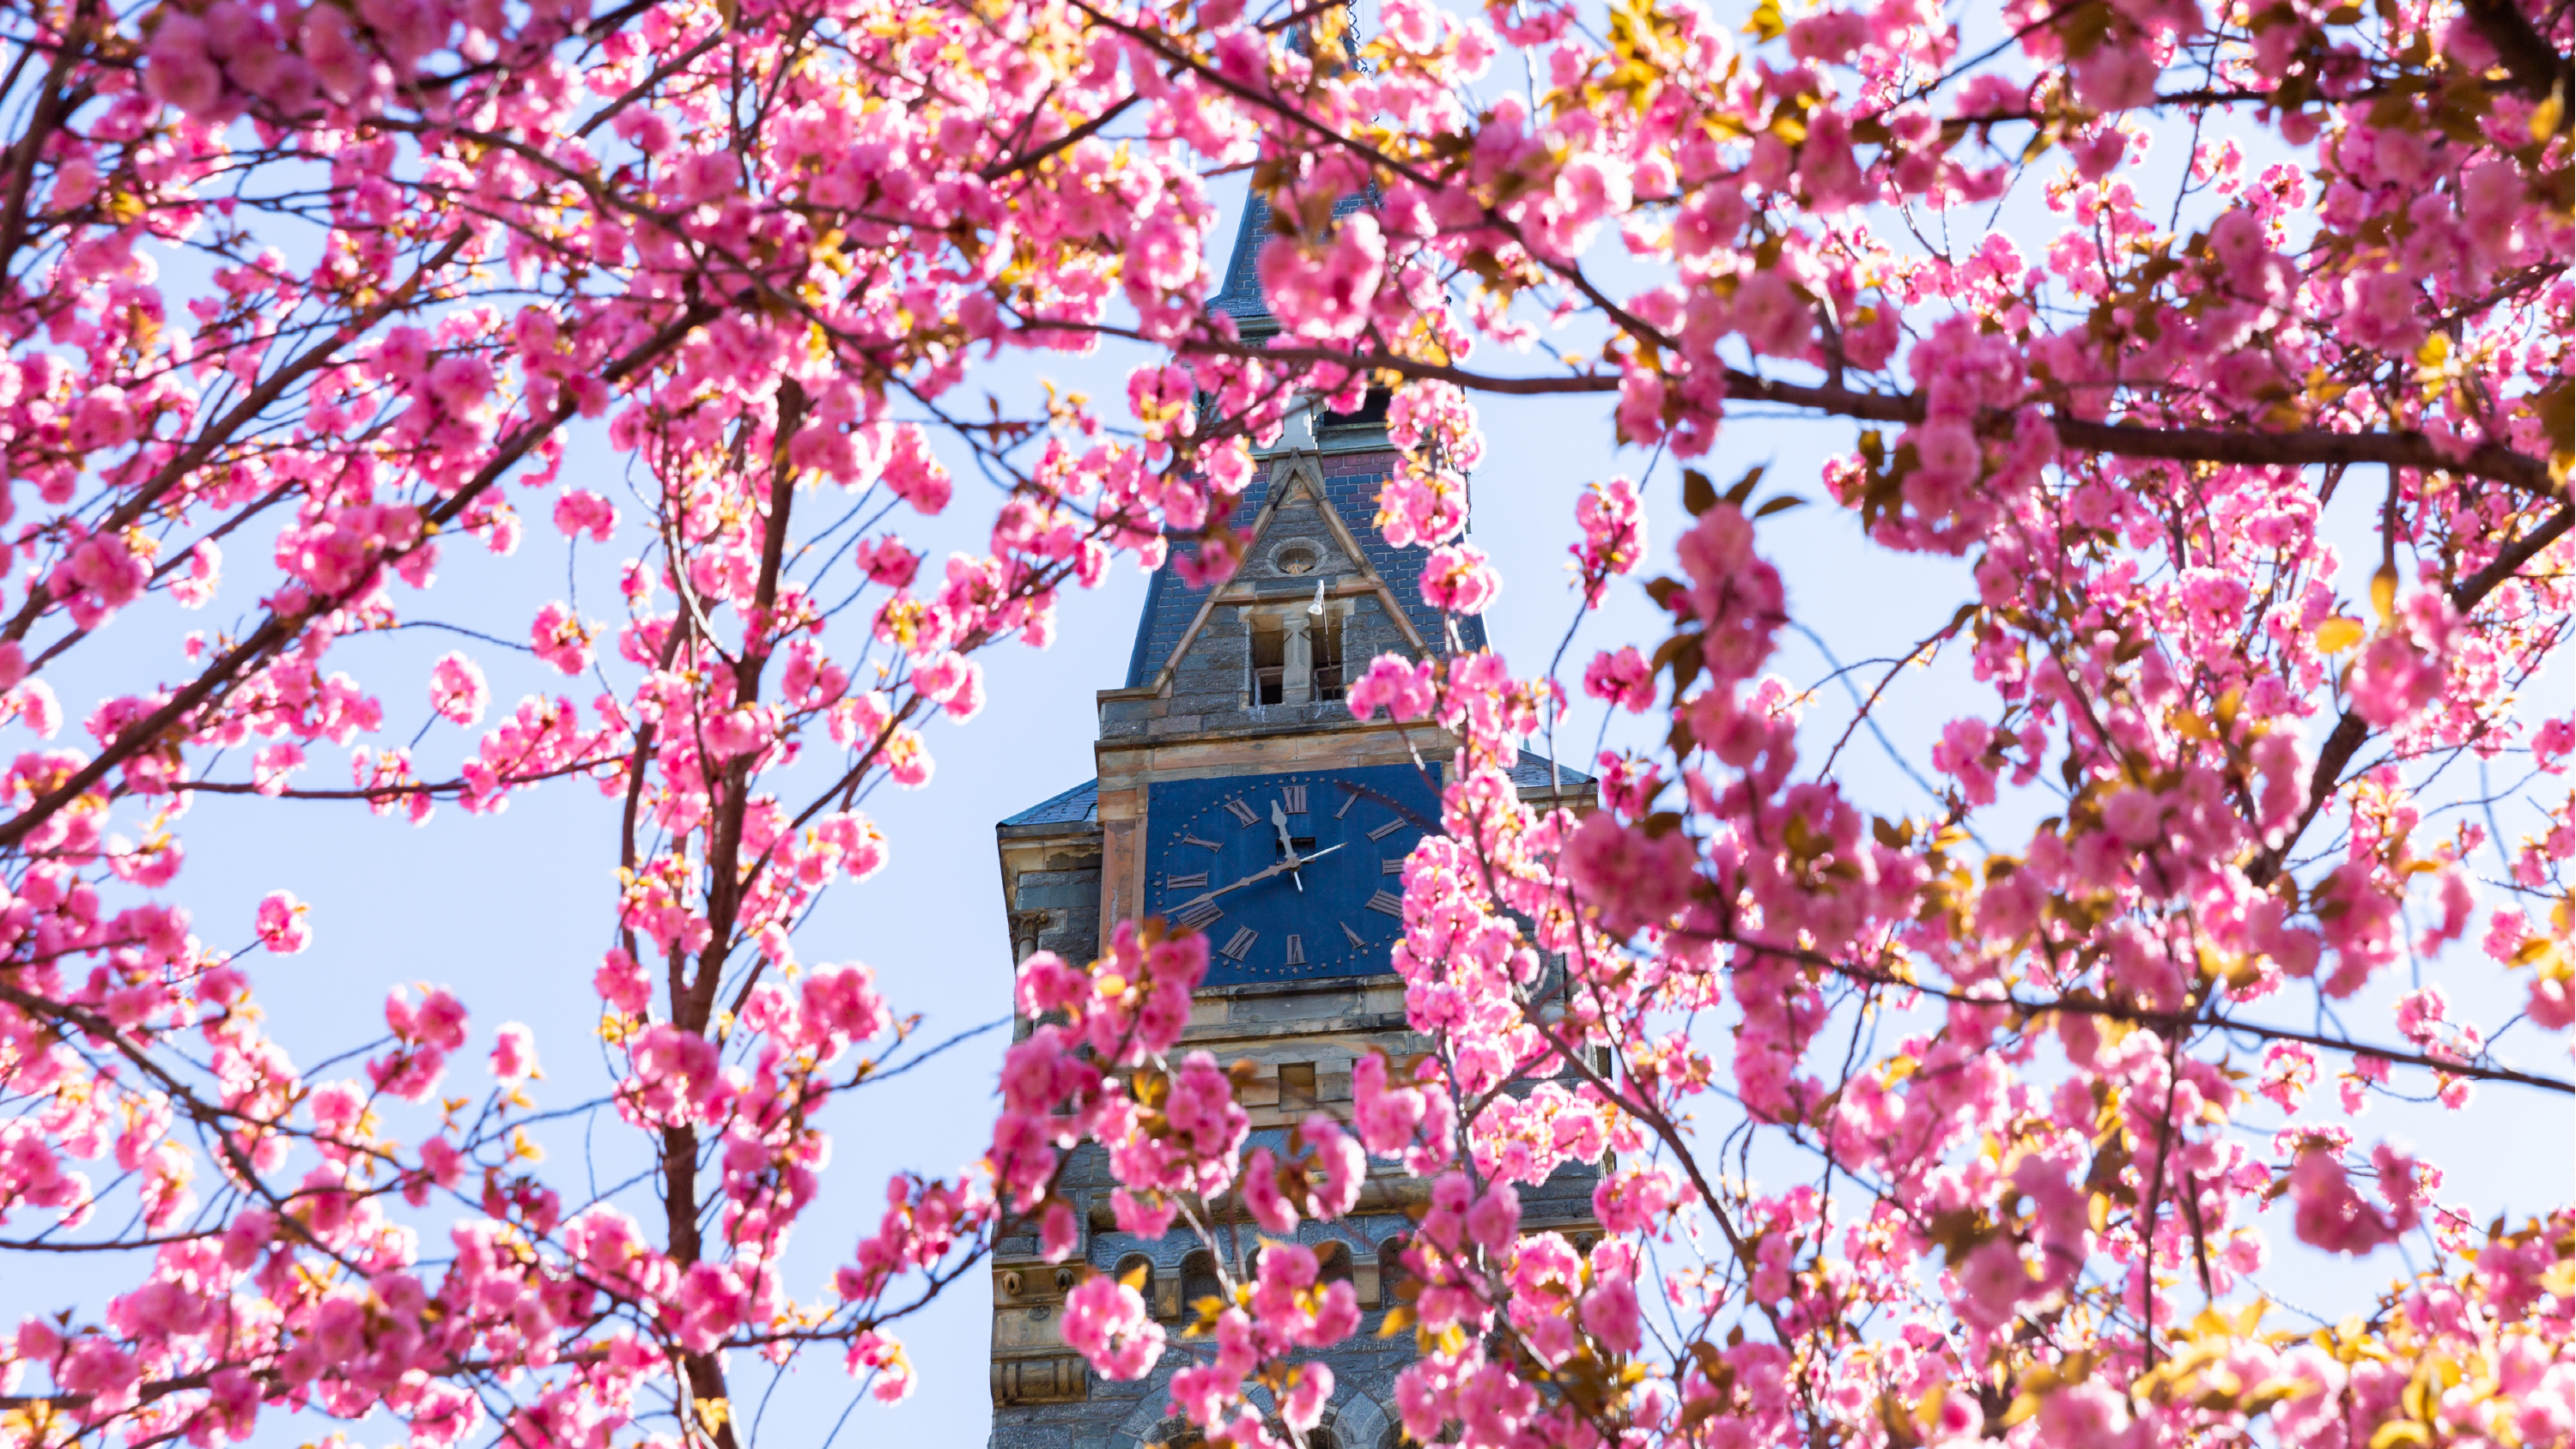 Photo of Healy clock tower covered with pink blossoms